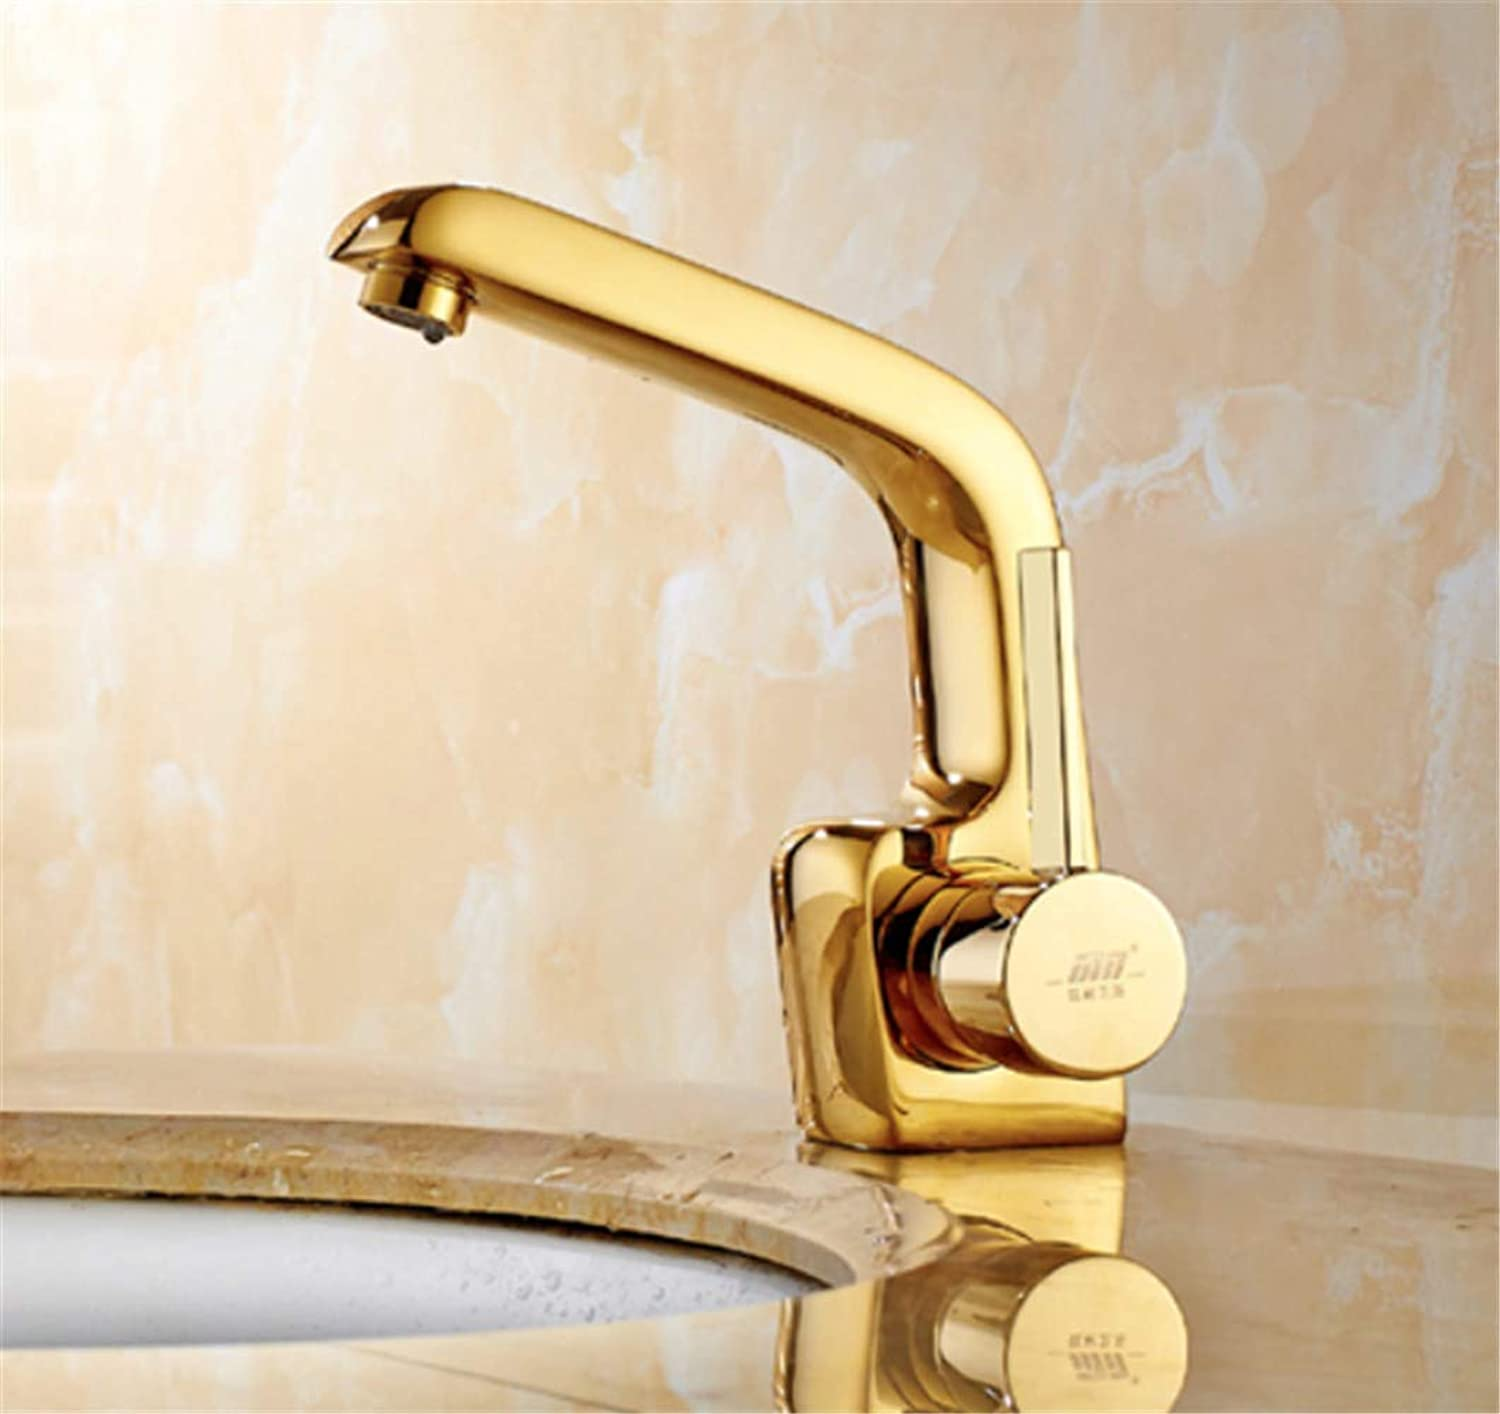 Faucet Quality Warranty Basin Faucet European Style Copper gold Basin Faucet Bath Basin, Washbasin, Faucet, Hot and Cold Faucet